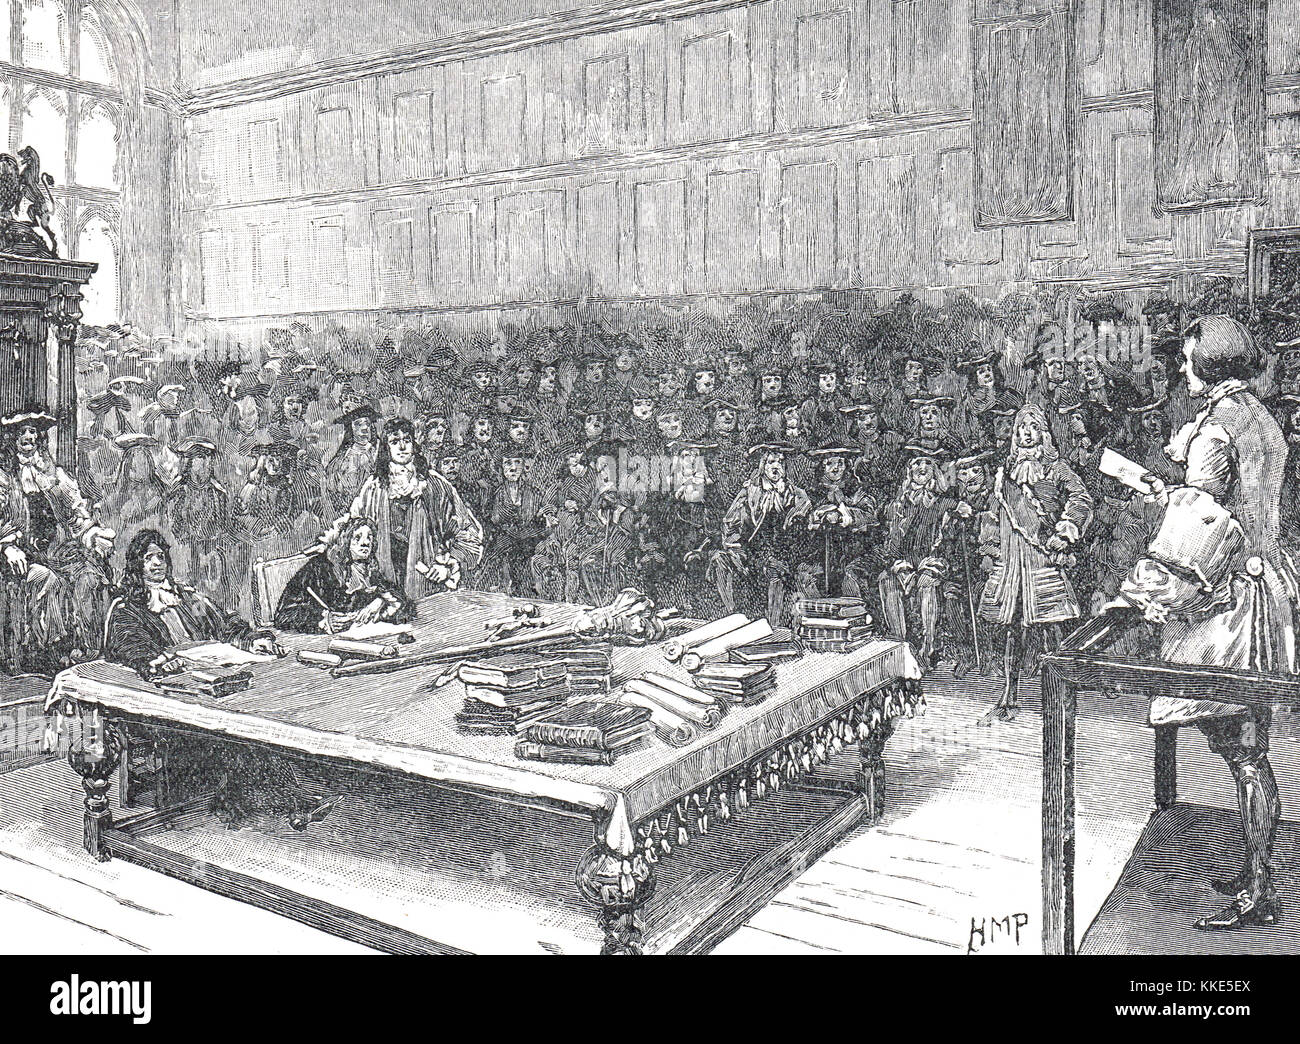 Captain Kidd, privateer, answering questions before the house of commons, 1701 - Stock Image